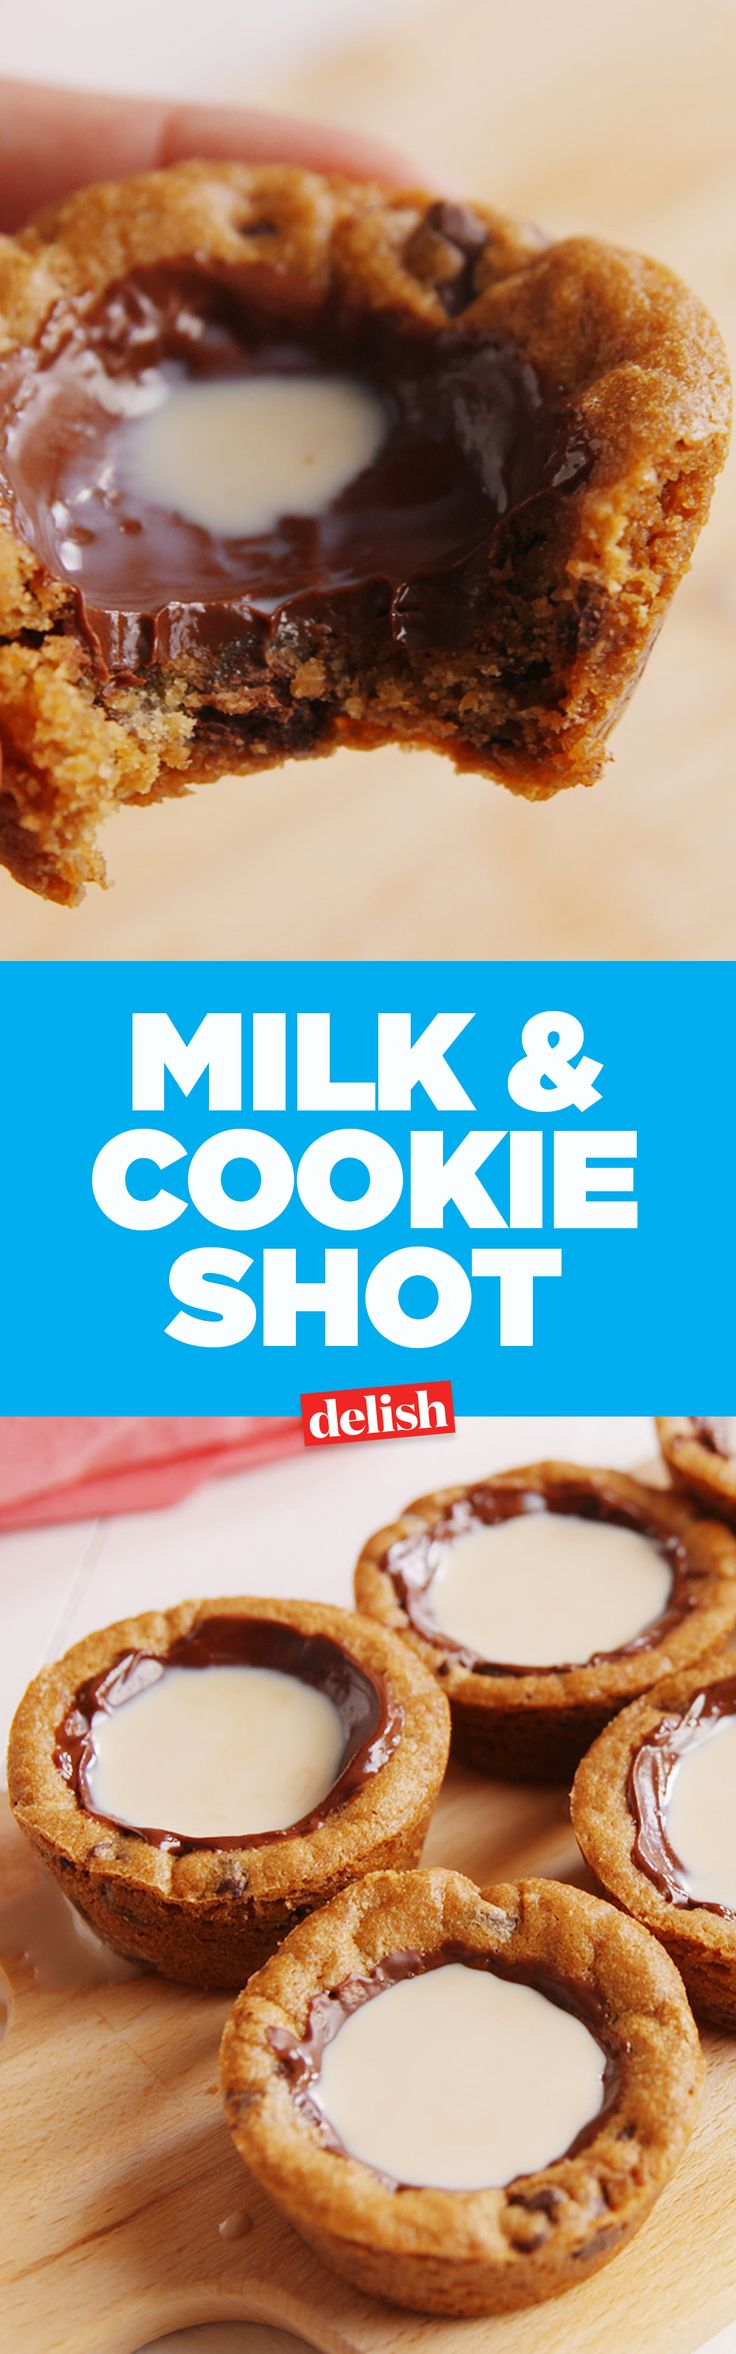 These milk & cookie shots sure do go down easy. Get the recipe on Delish.com.